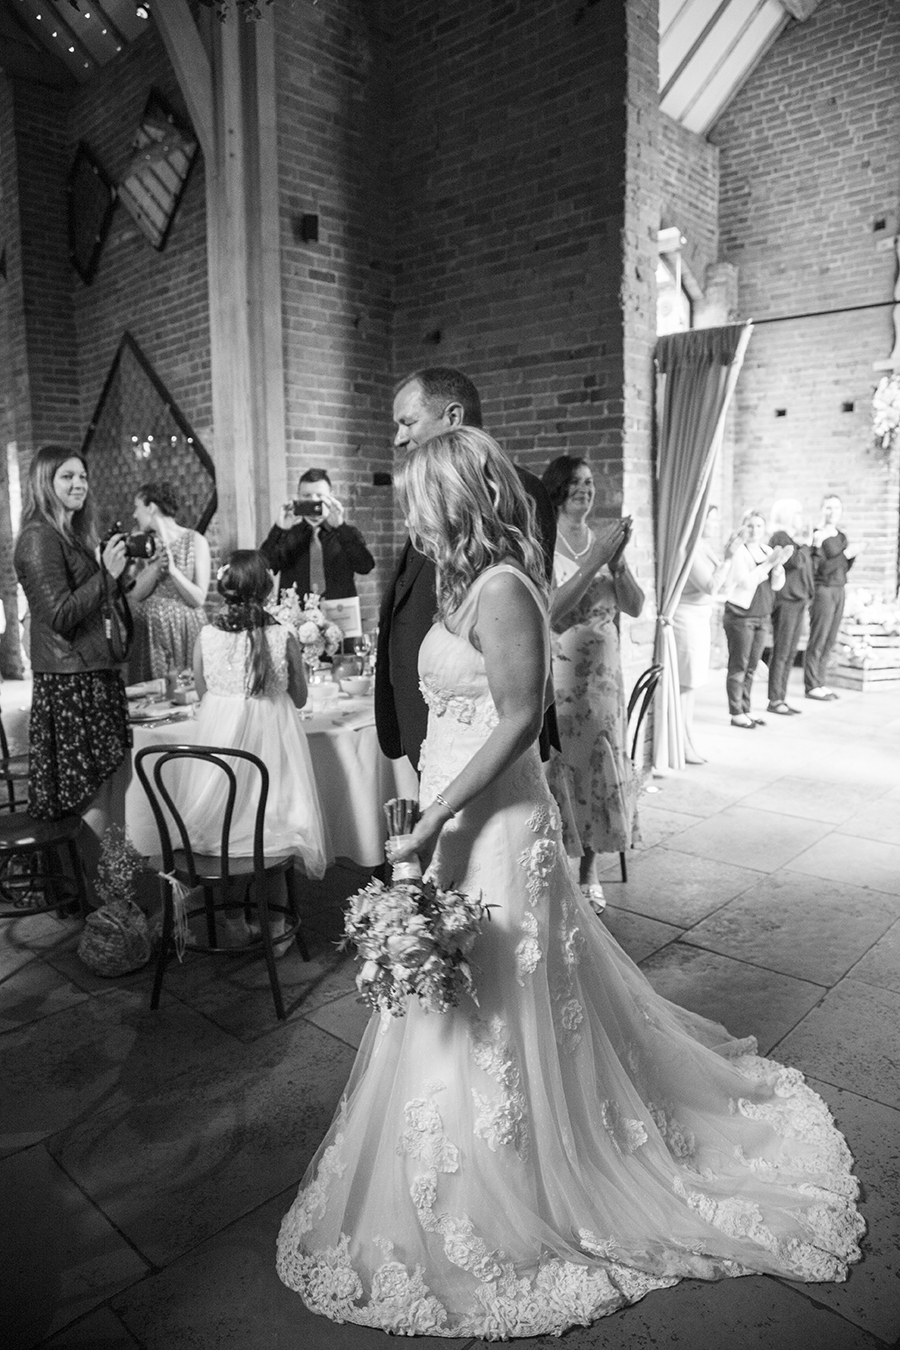 wedding photographer Hartlebury.jpg